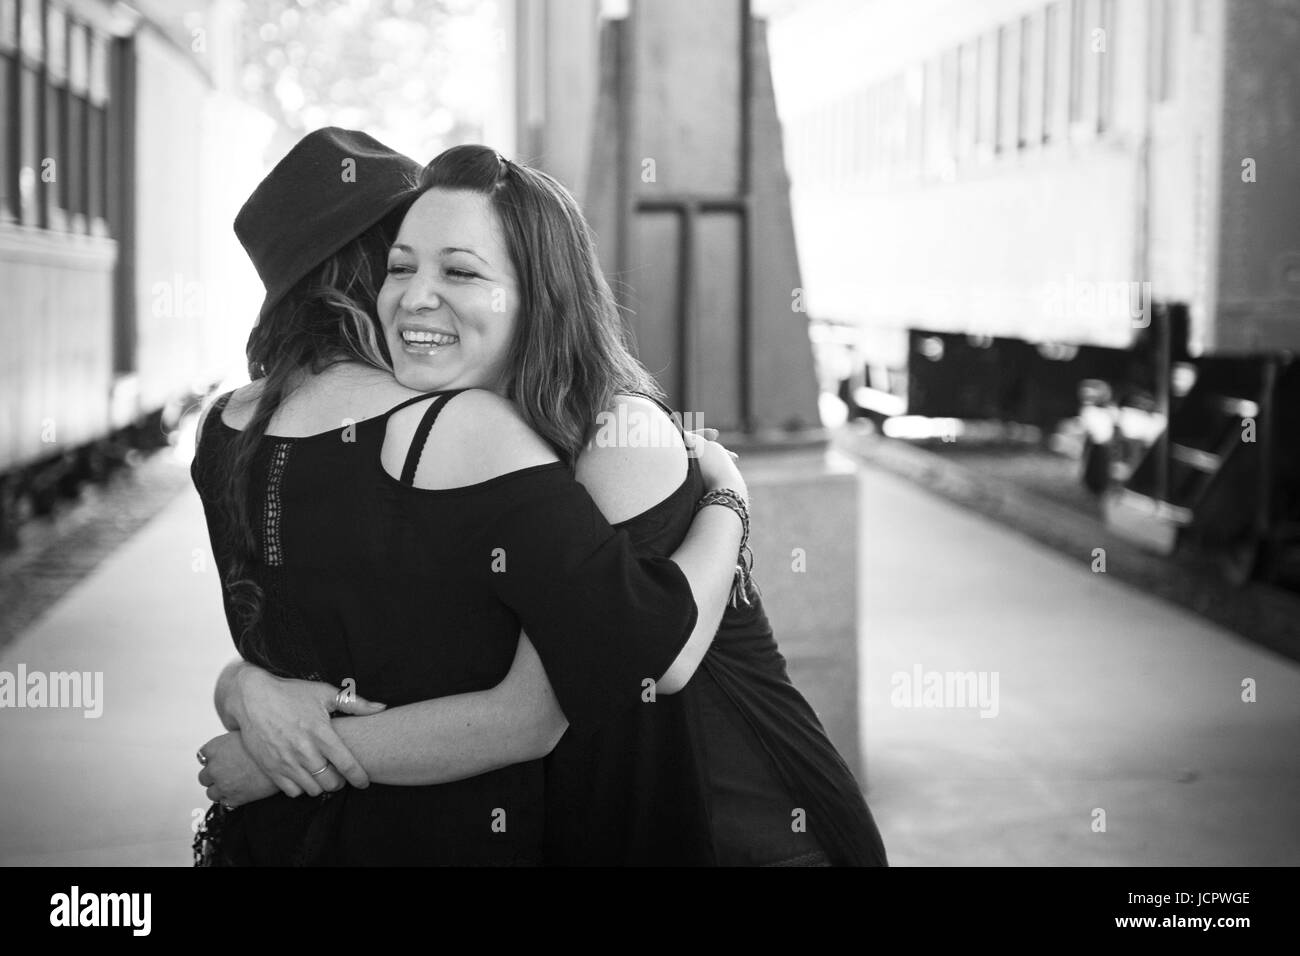 Hug black and white pics black and white photography